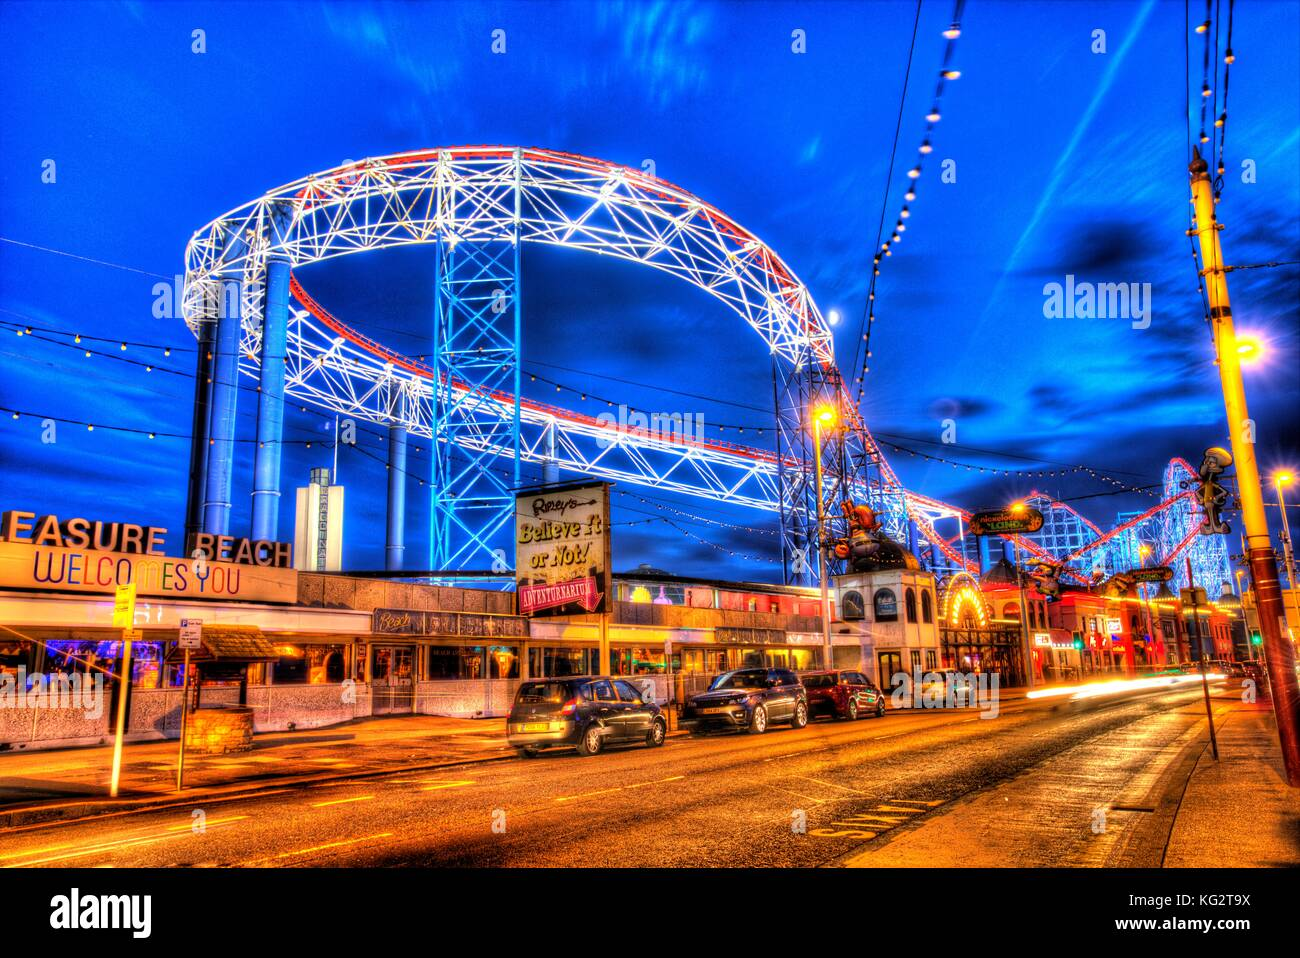 Town of Blackpool, England. Artistic night view of Blackpool Pleasure Beach. This photograph has been produced by - Stock Image